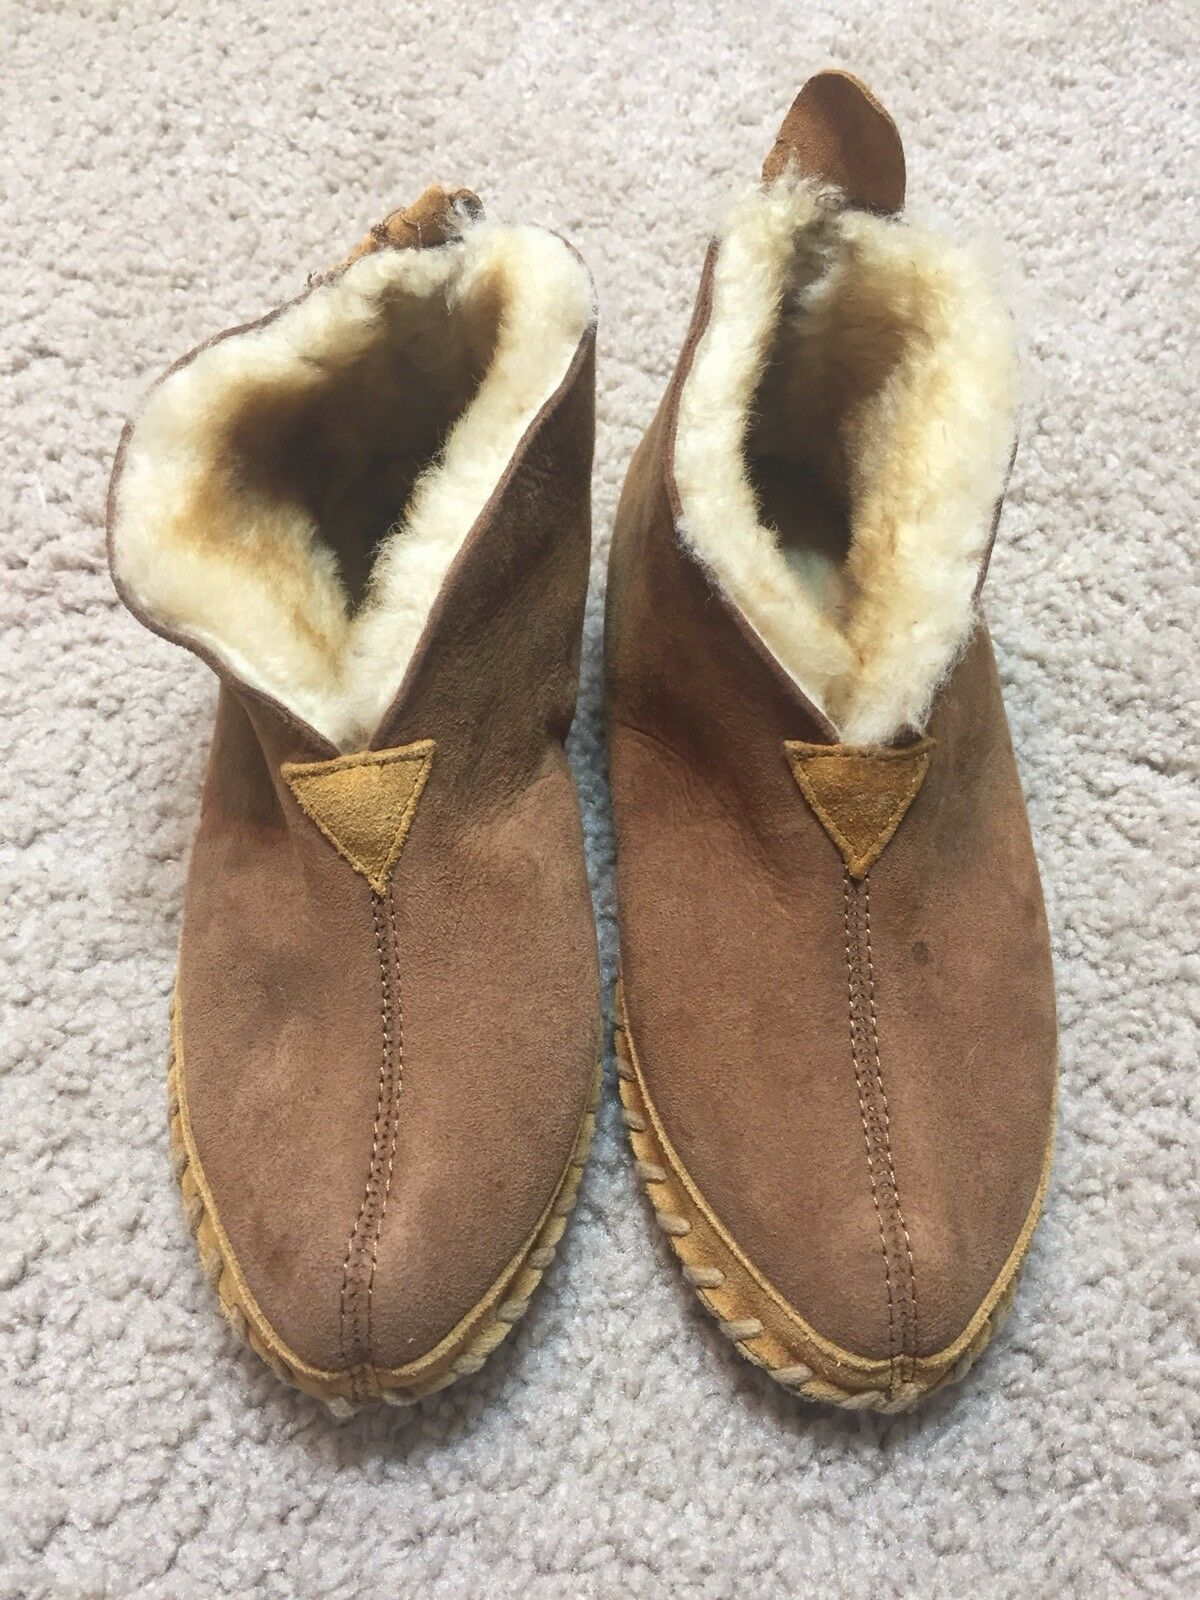 LL Bean Botties Sheepskin Shearling Chestnut Brown Size 6 shoes  Sleepers